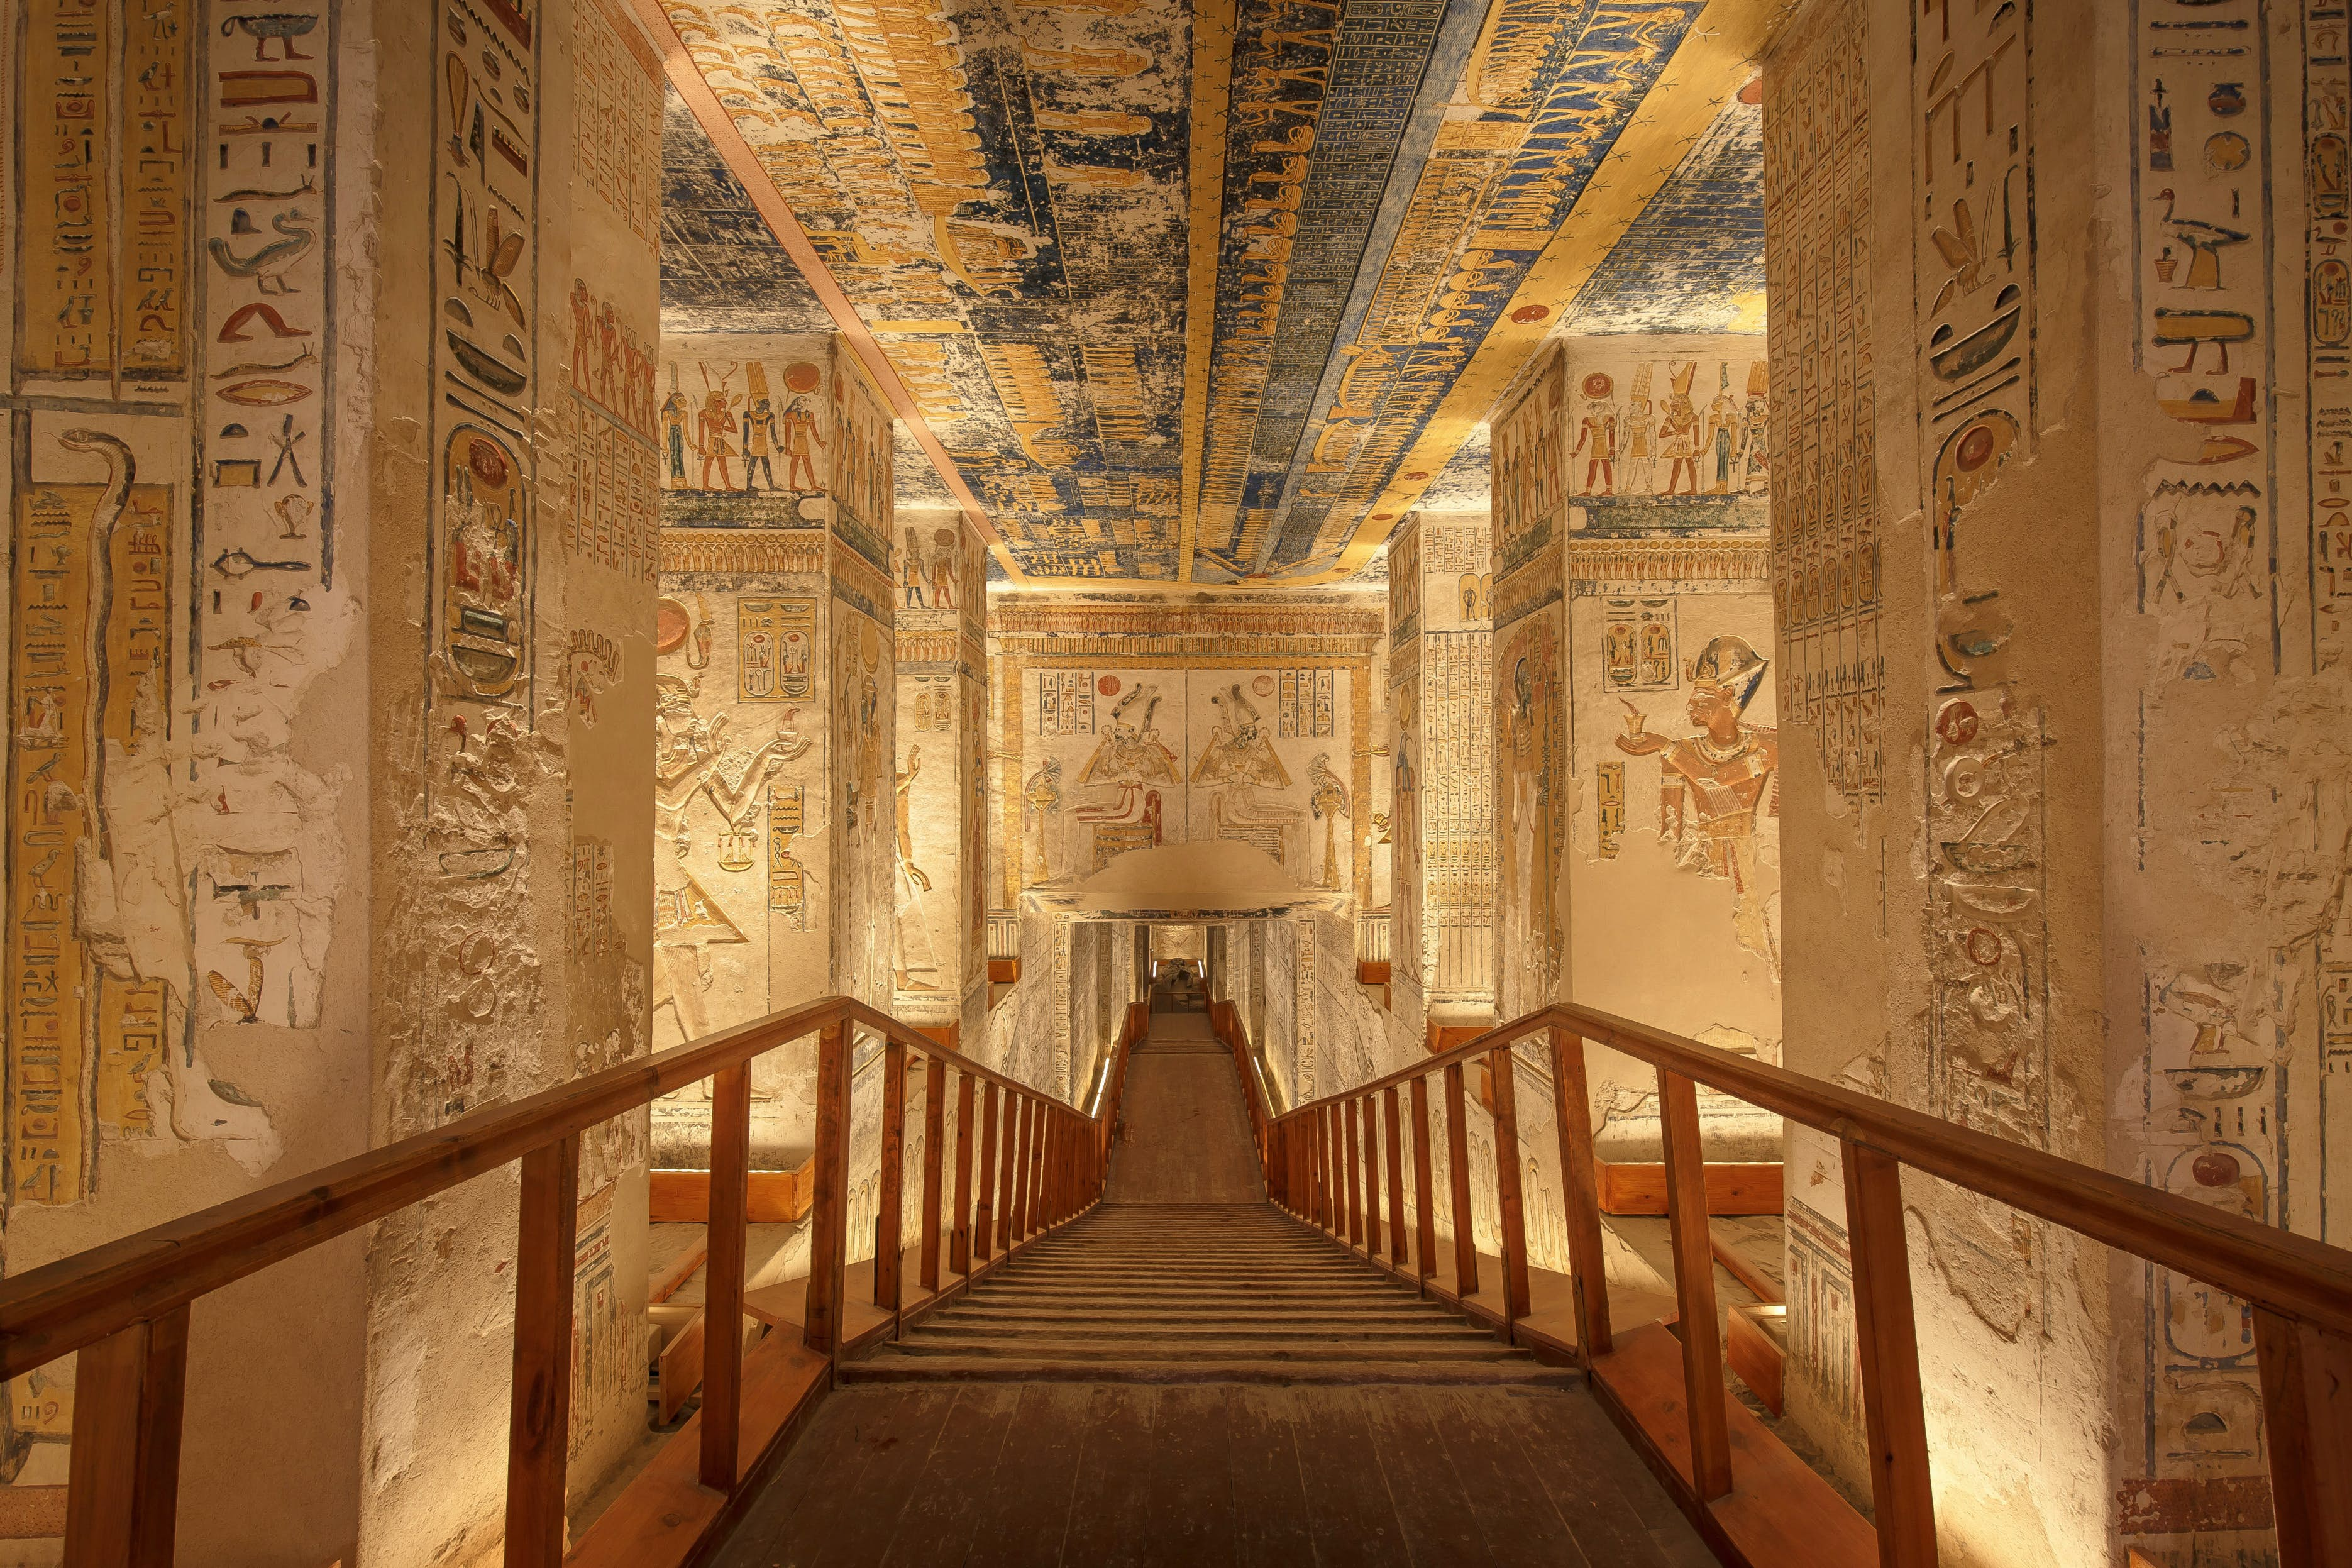 Valley of the Kings | Luxor, Egypt Attractions - Lonely Planet